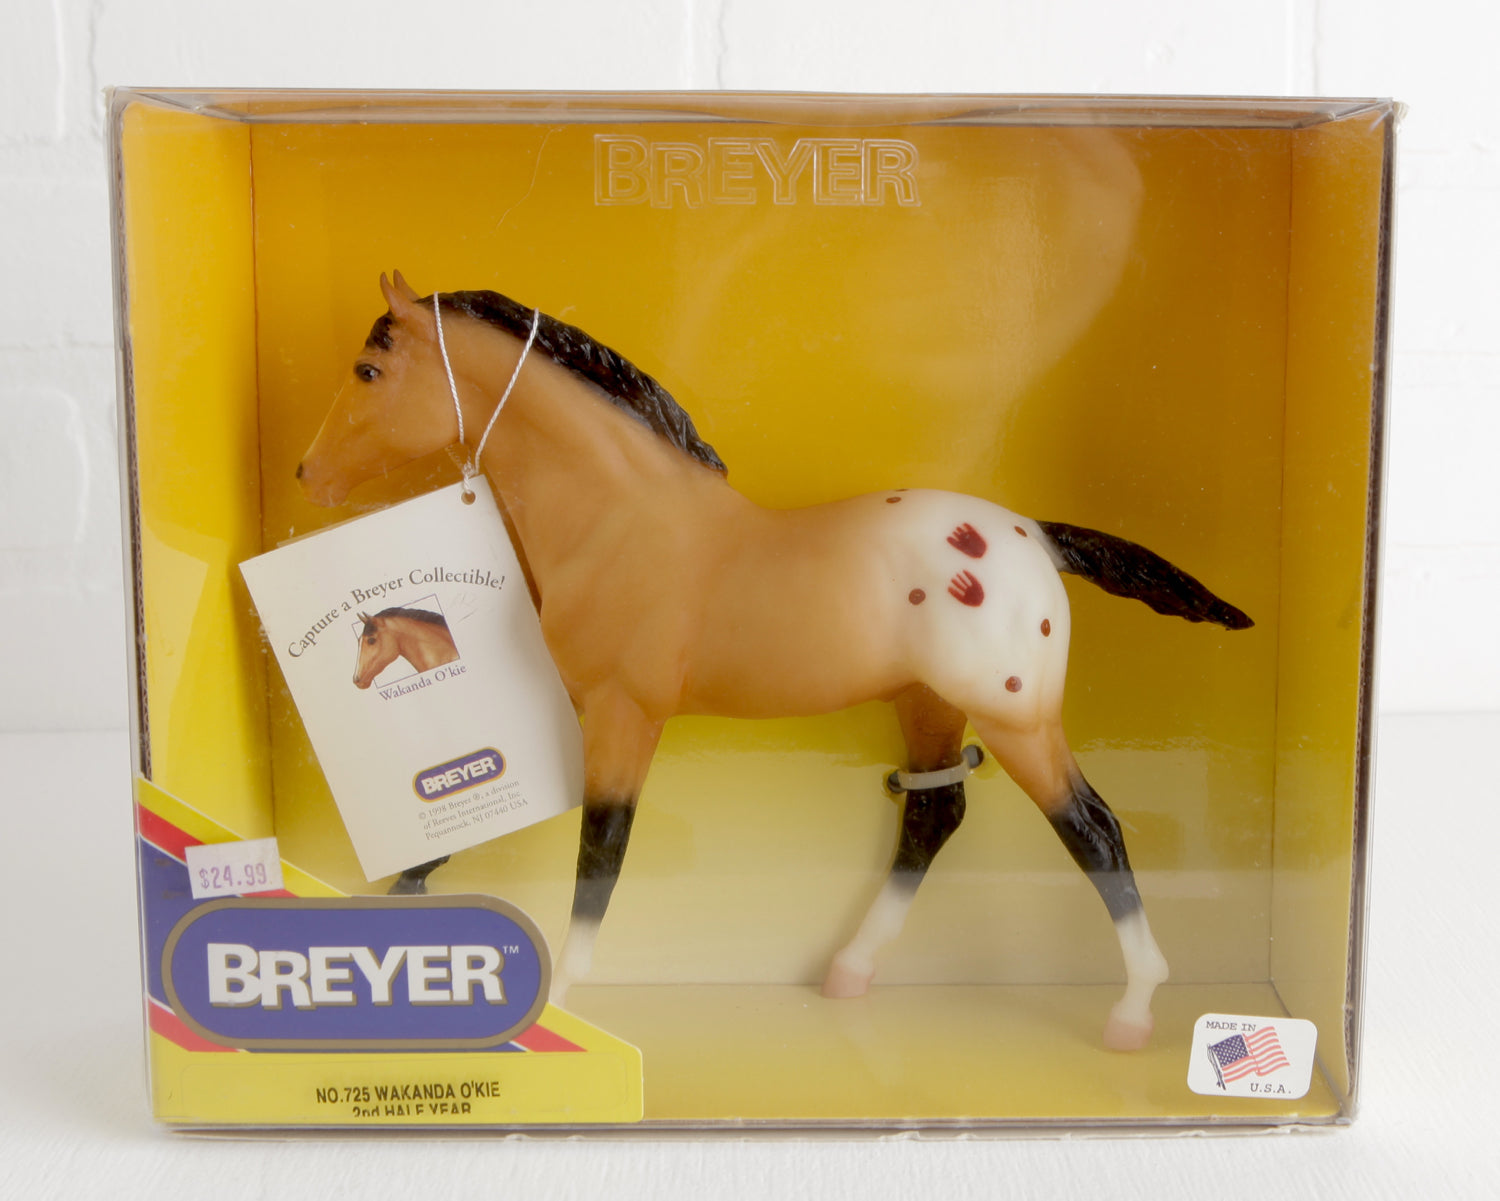 Breyer Wakanda Okie #725 in Original Box at Lobster Bisque Vintage